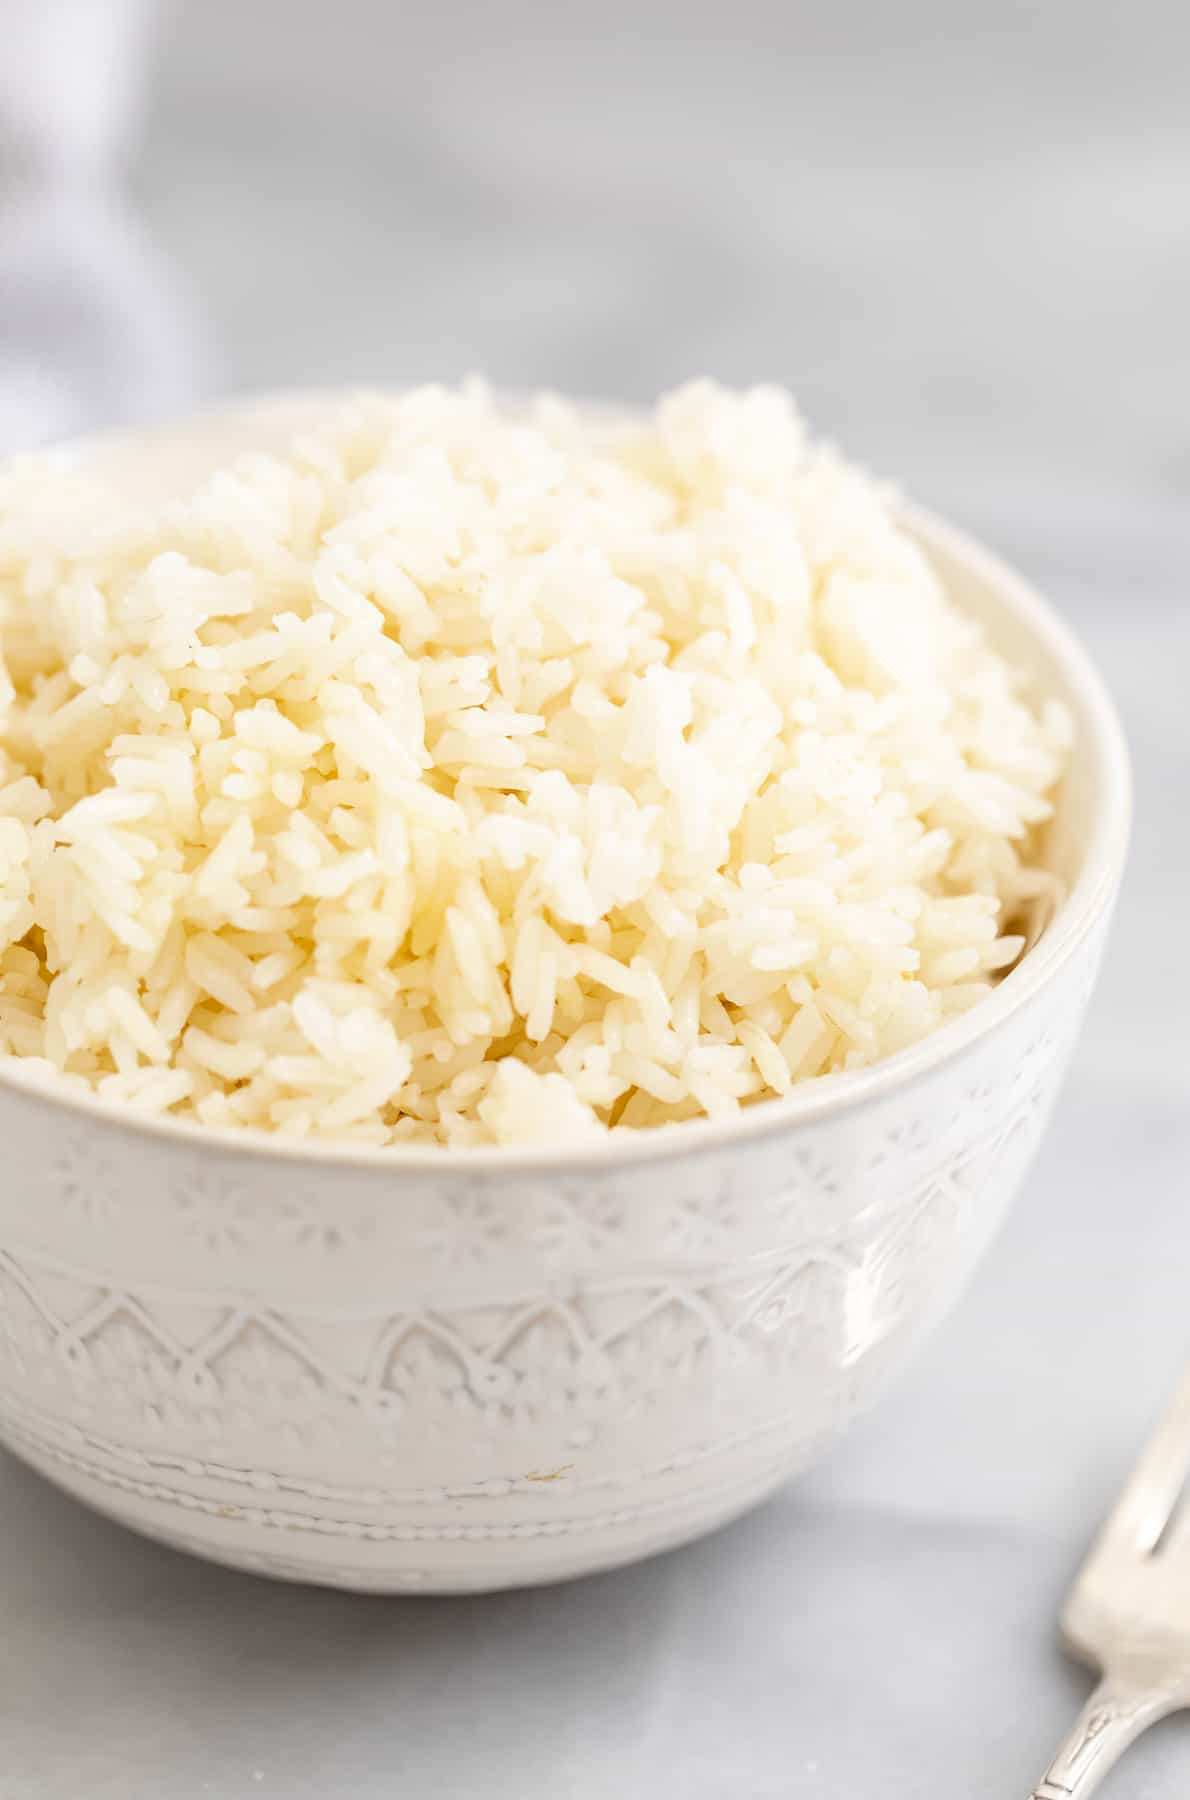 Small white bowl filled with jasmine rice.